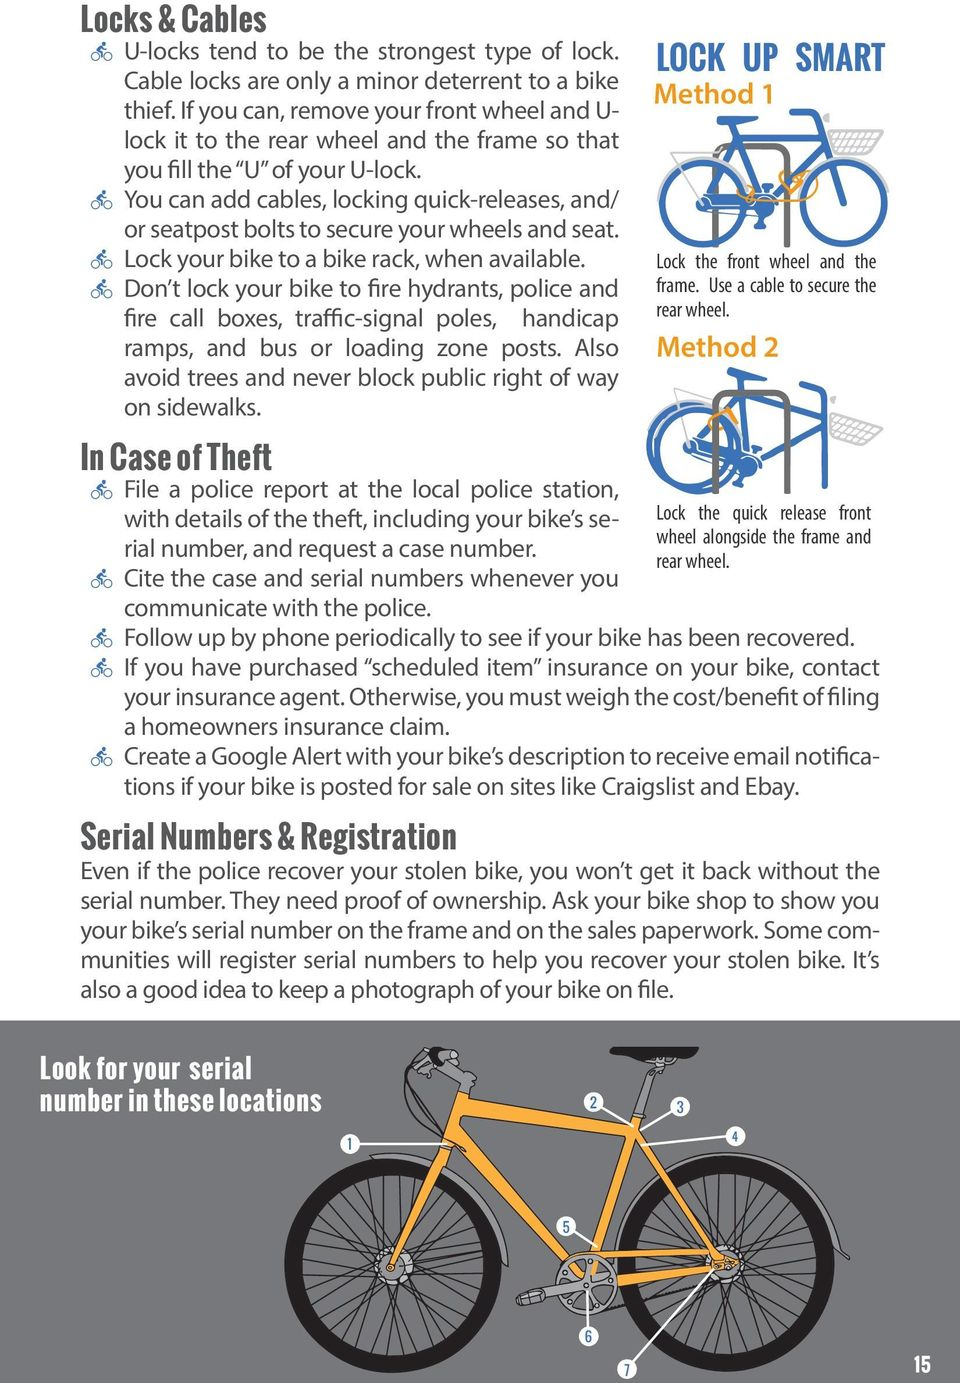 You can add cables, locking quick-releases, and/ or seatpost bolts to secure your wheels and seat. Lock your bike to a bike rack, when available.